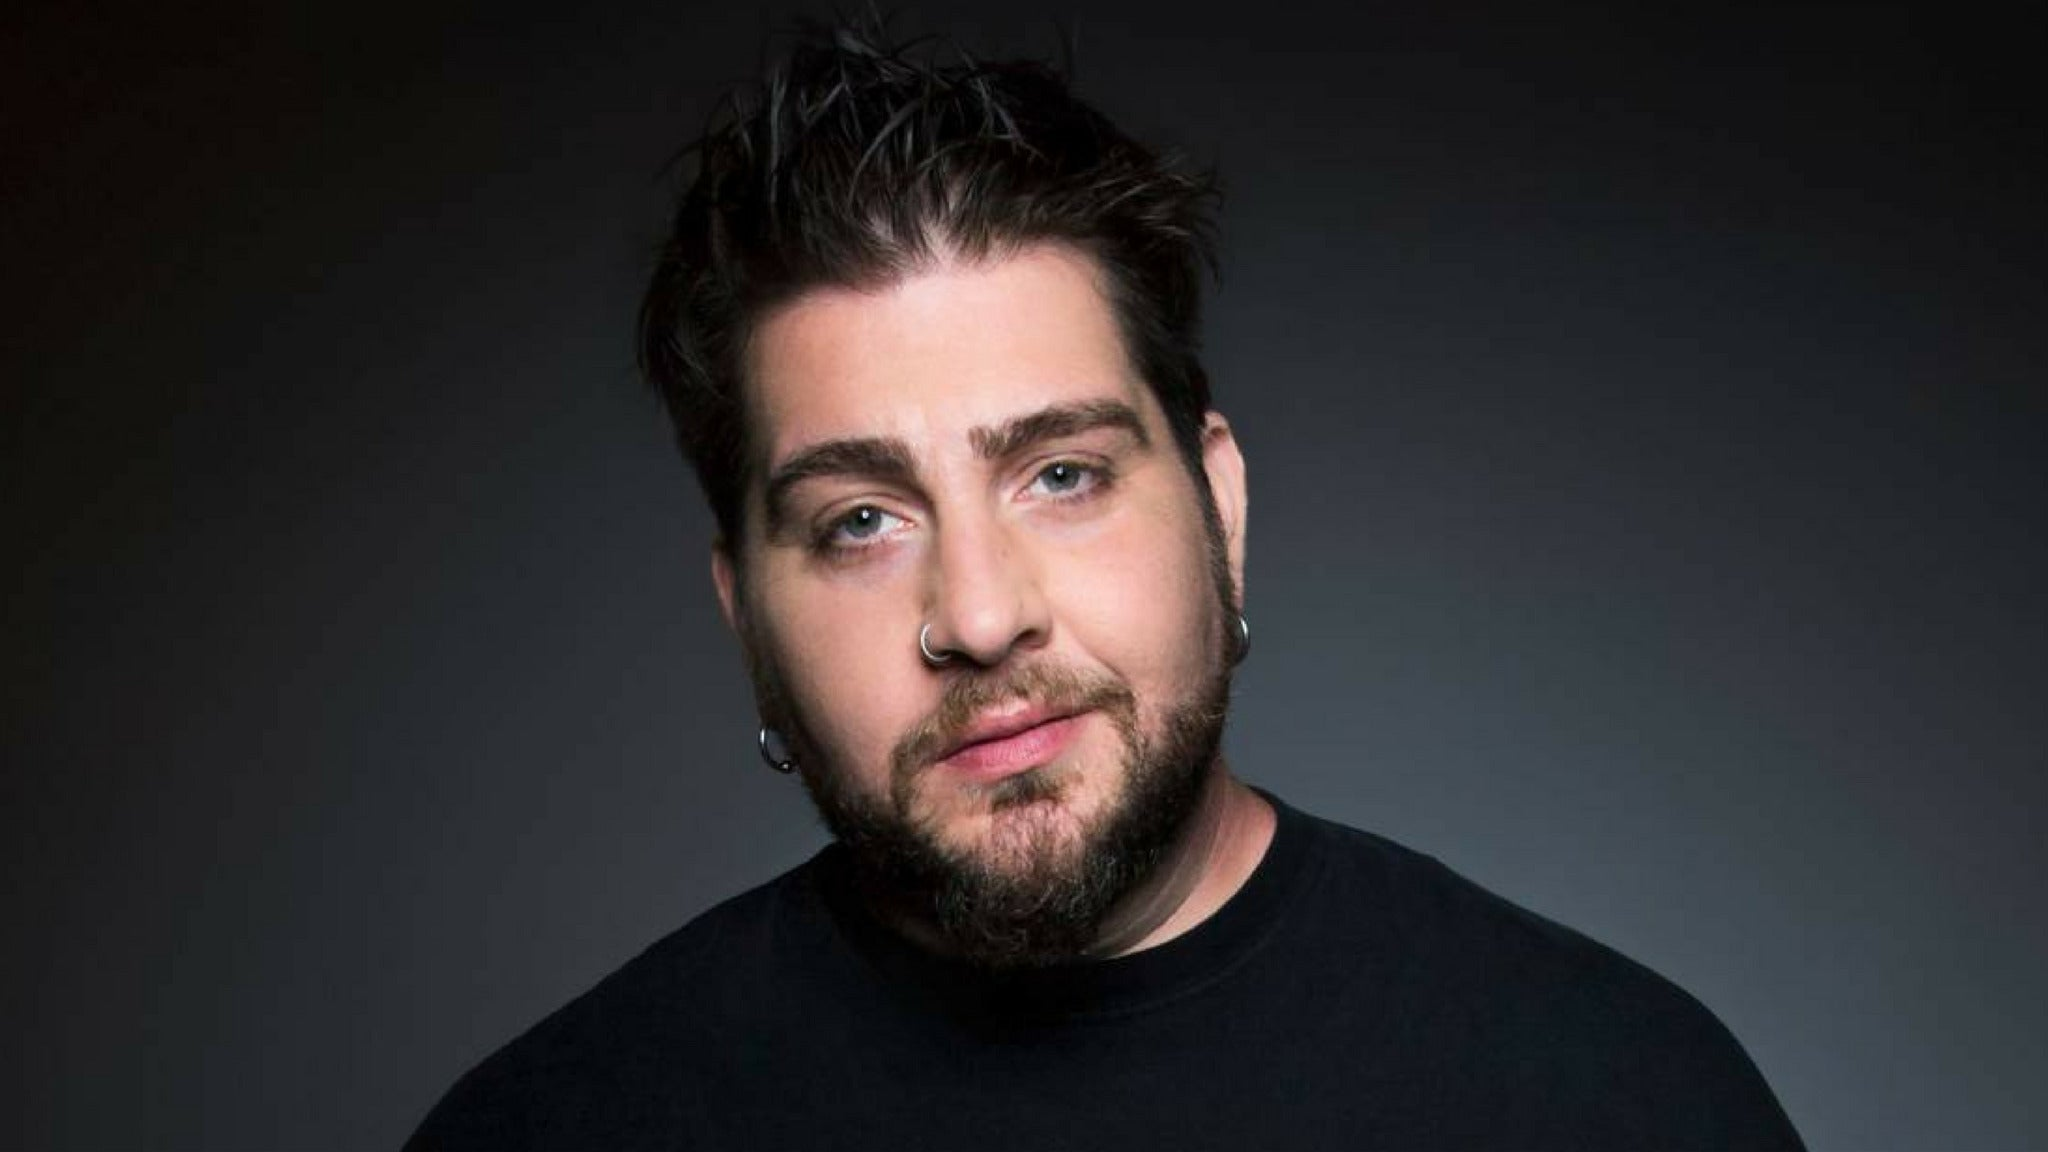 Big Jay Oakerson at Stress Factory Comedy Club